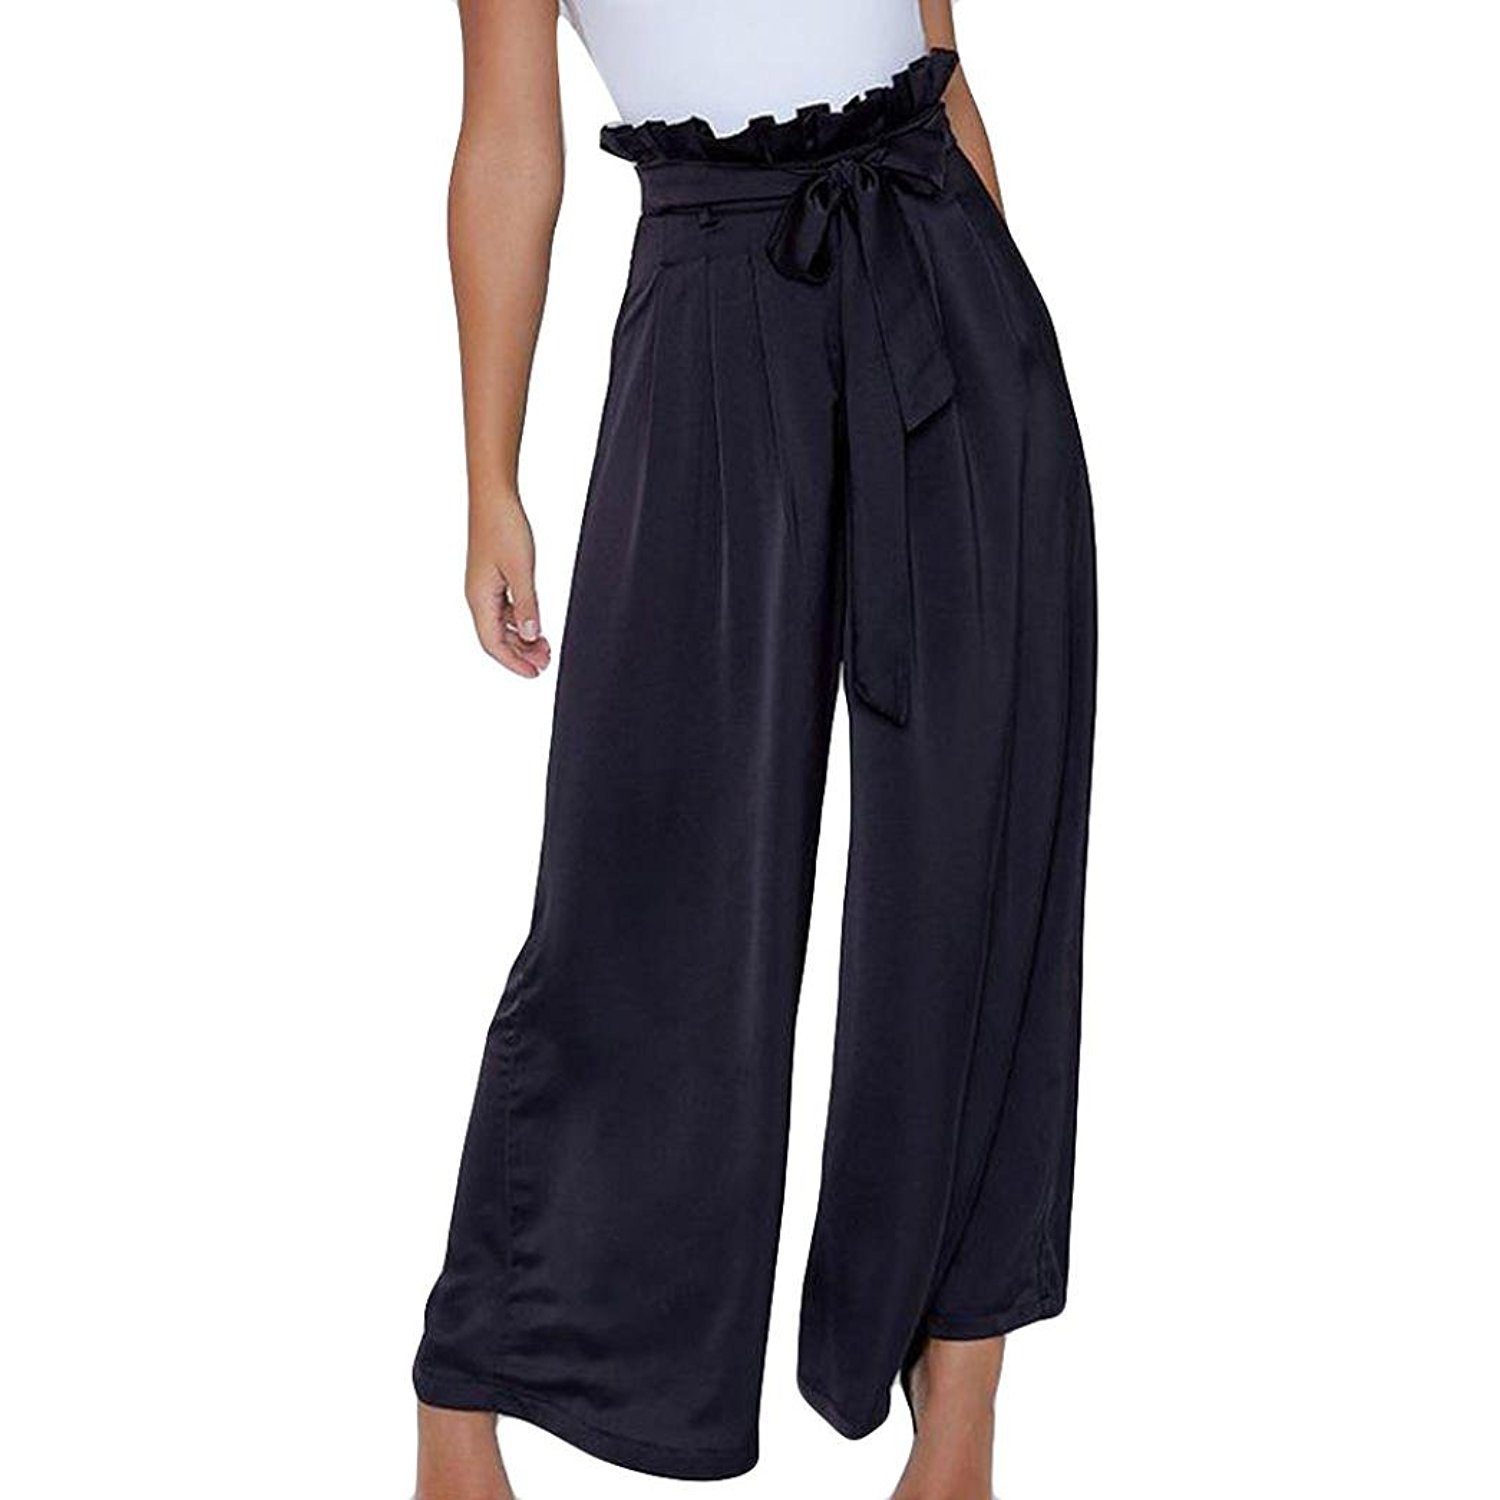 29cd9db365d94c Get Quotations · Challyhope Women's Casual Wide Leg Palazzo Pants Gaucho  Pants Culottes Falre Trousers